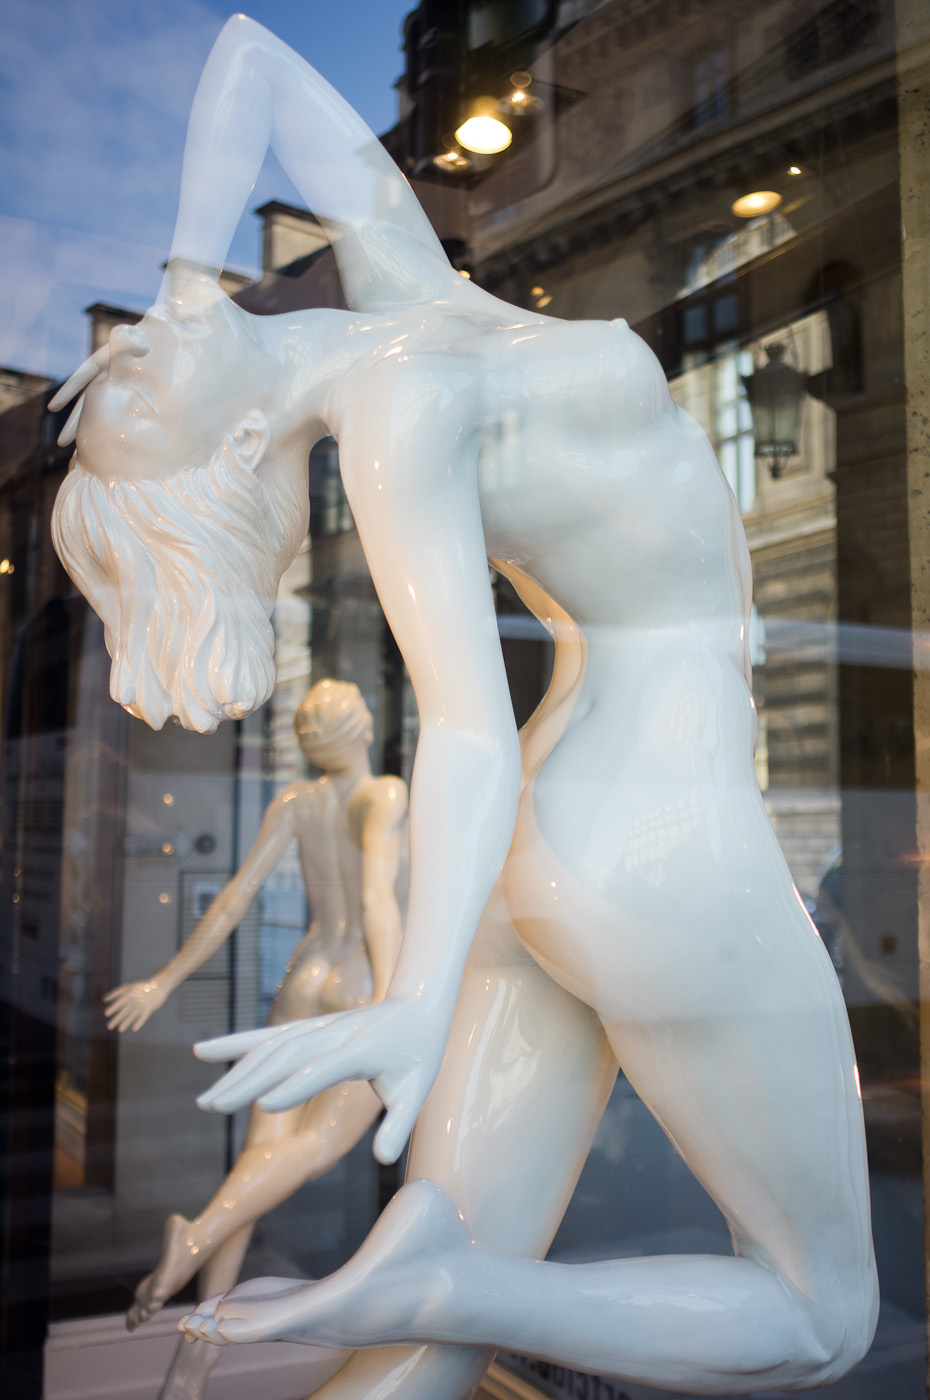 Two dancing alabaster naked women in an art gallery next to the Louvre museum. Sony NEX-5n and Zeiss Biogon ZM 25/2.8